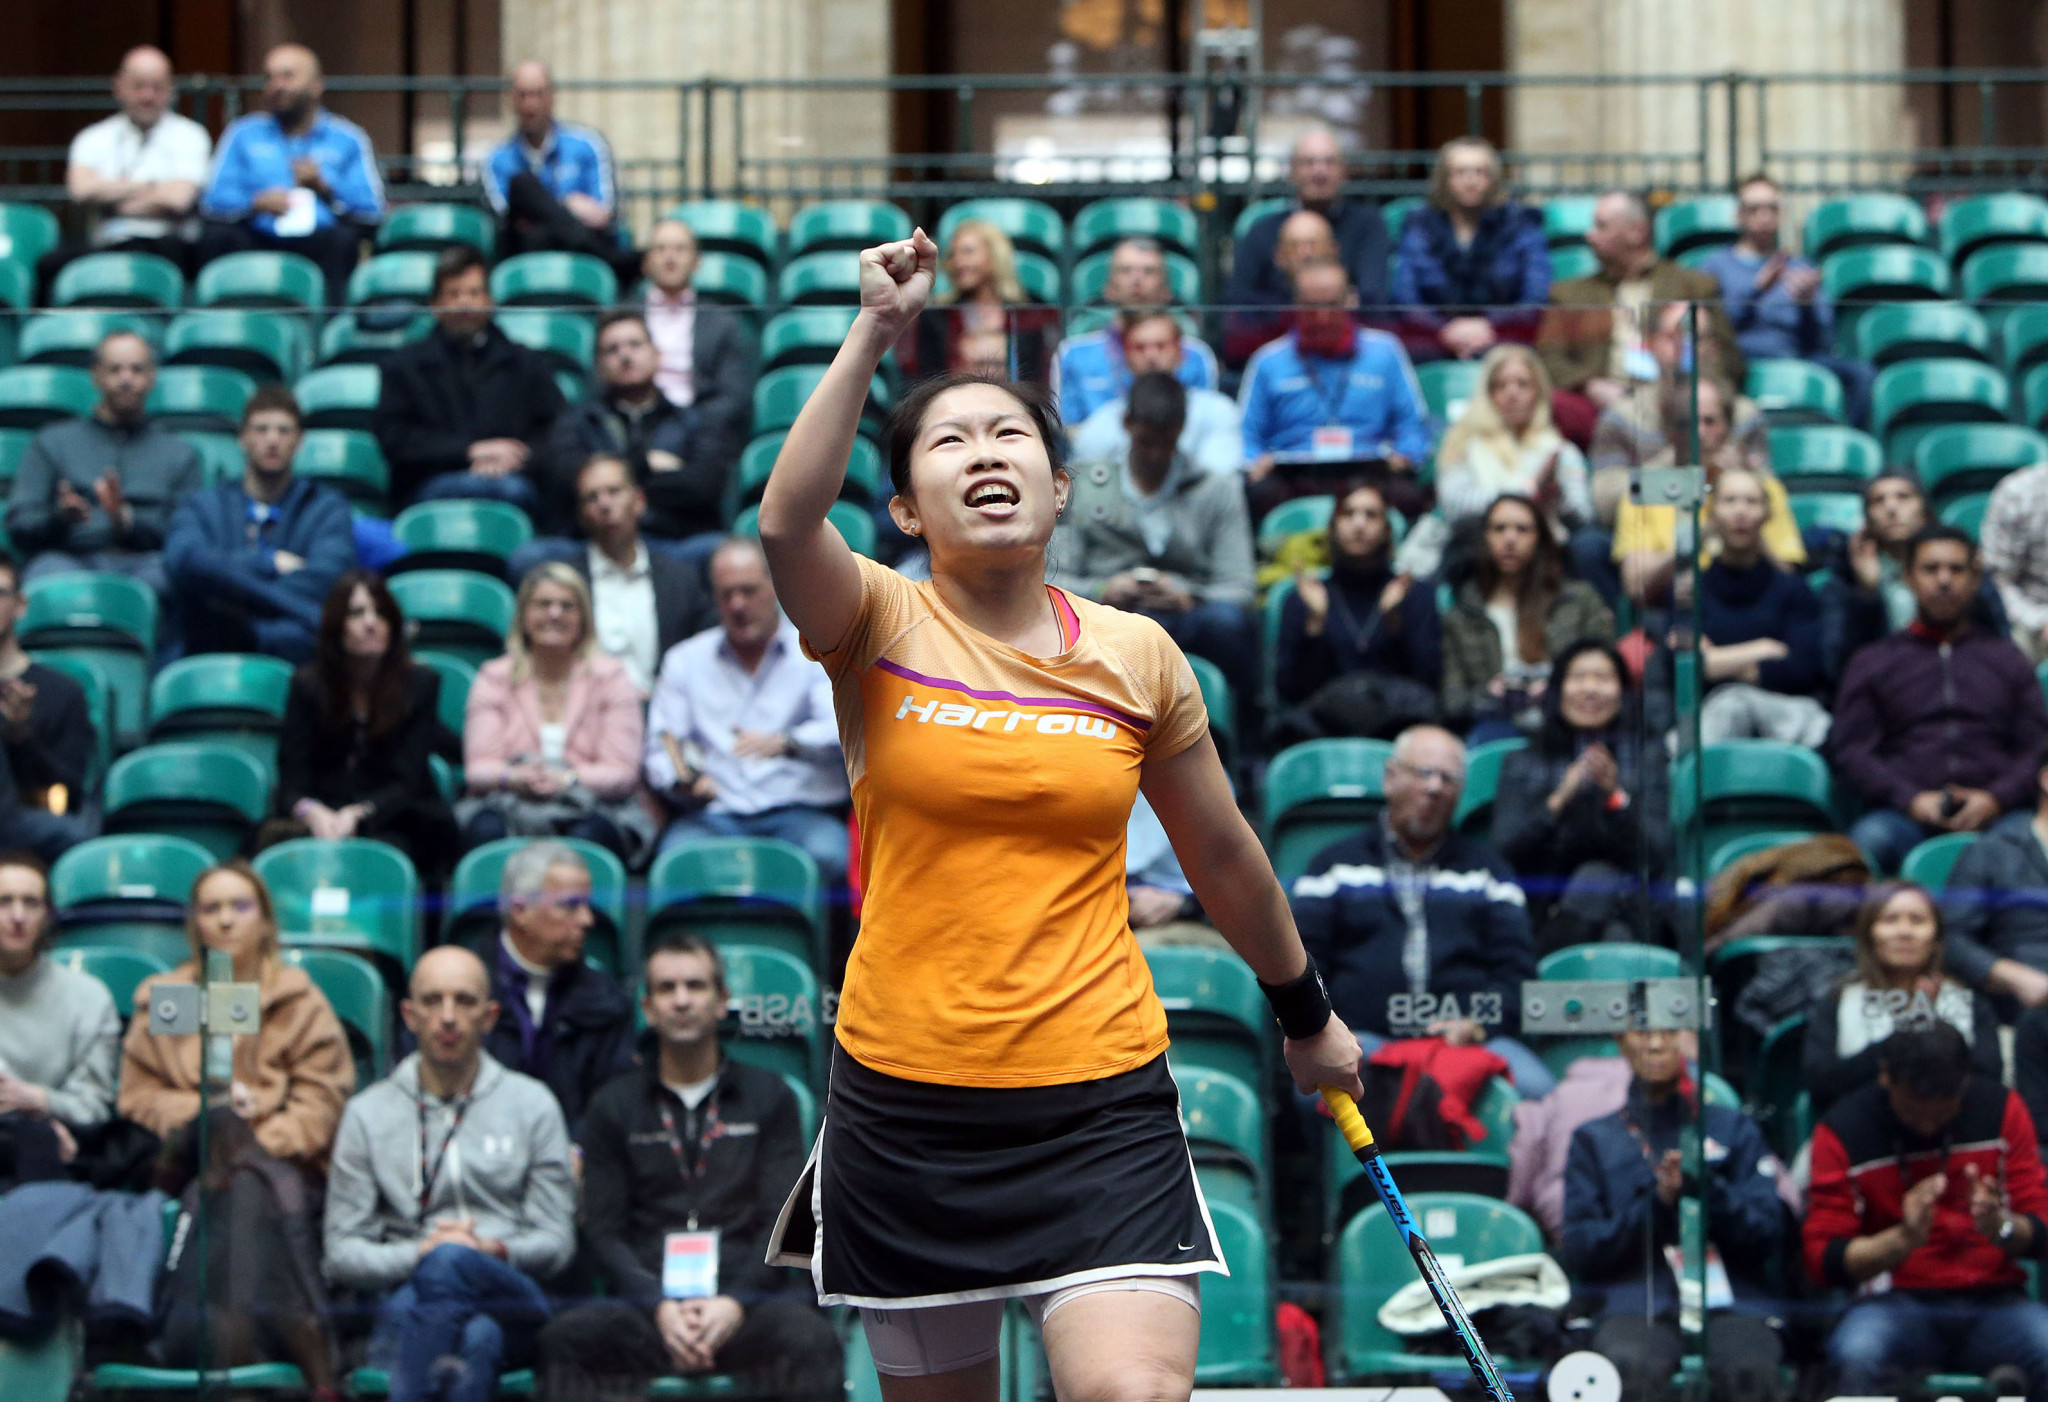 World number 12 Annie Au became the first player from Hong Kong to qualify for the quarter-finals at the World Championships ©PSA